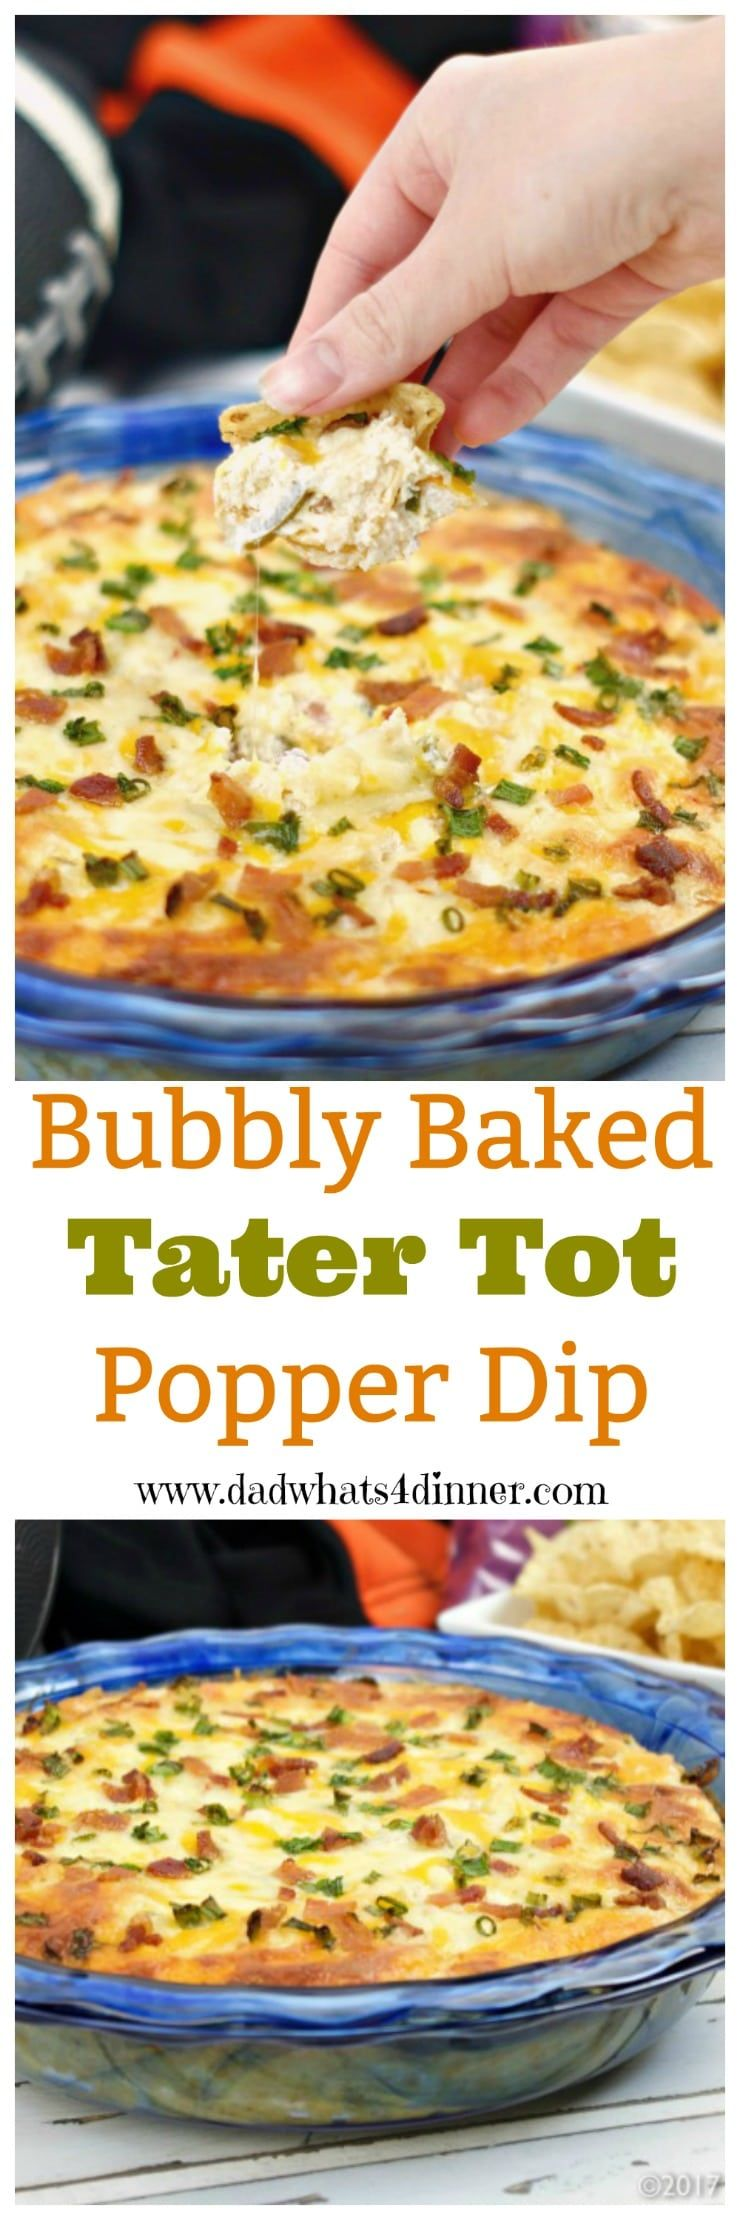 Bubbly Baked Tater Tot Popper Dip is a mash-up of two of my favorites, tater tots, and jalapeno popper dip. Perfect for tailgating or family game night.  #ad @familydollar #gameday #biggame #appetizer #dips #jalapenos #deliciousfood #recipes #tailgating #spicy www.dadwhats4dinner.com via @dadwhats4dinner